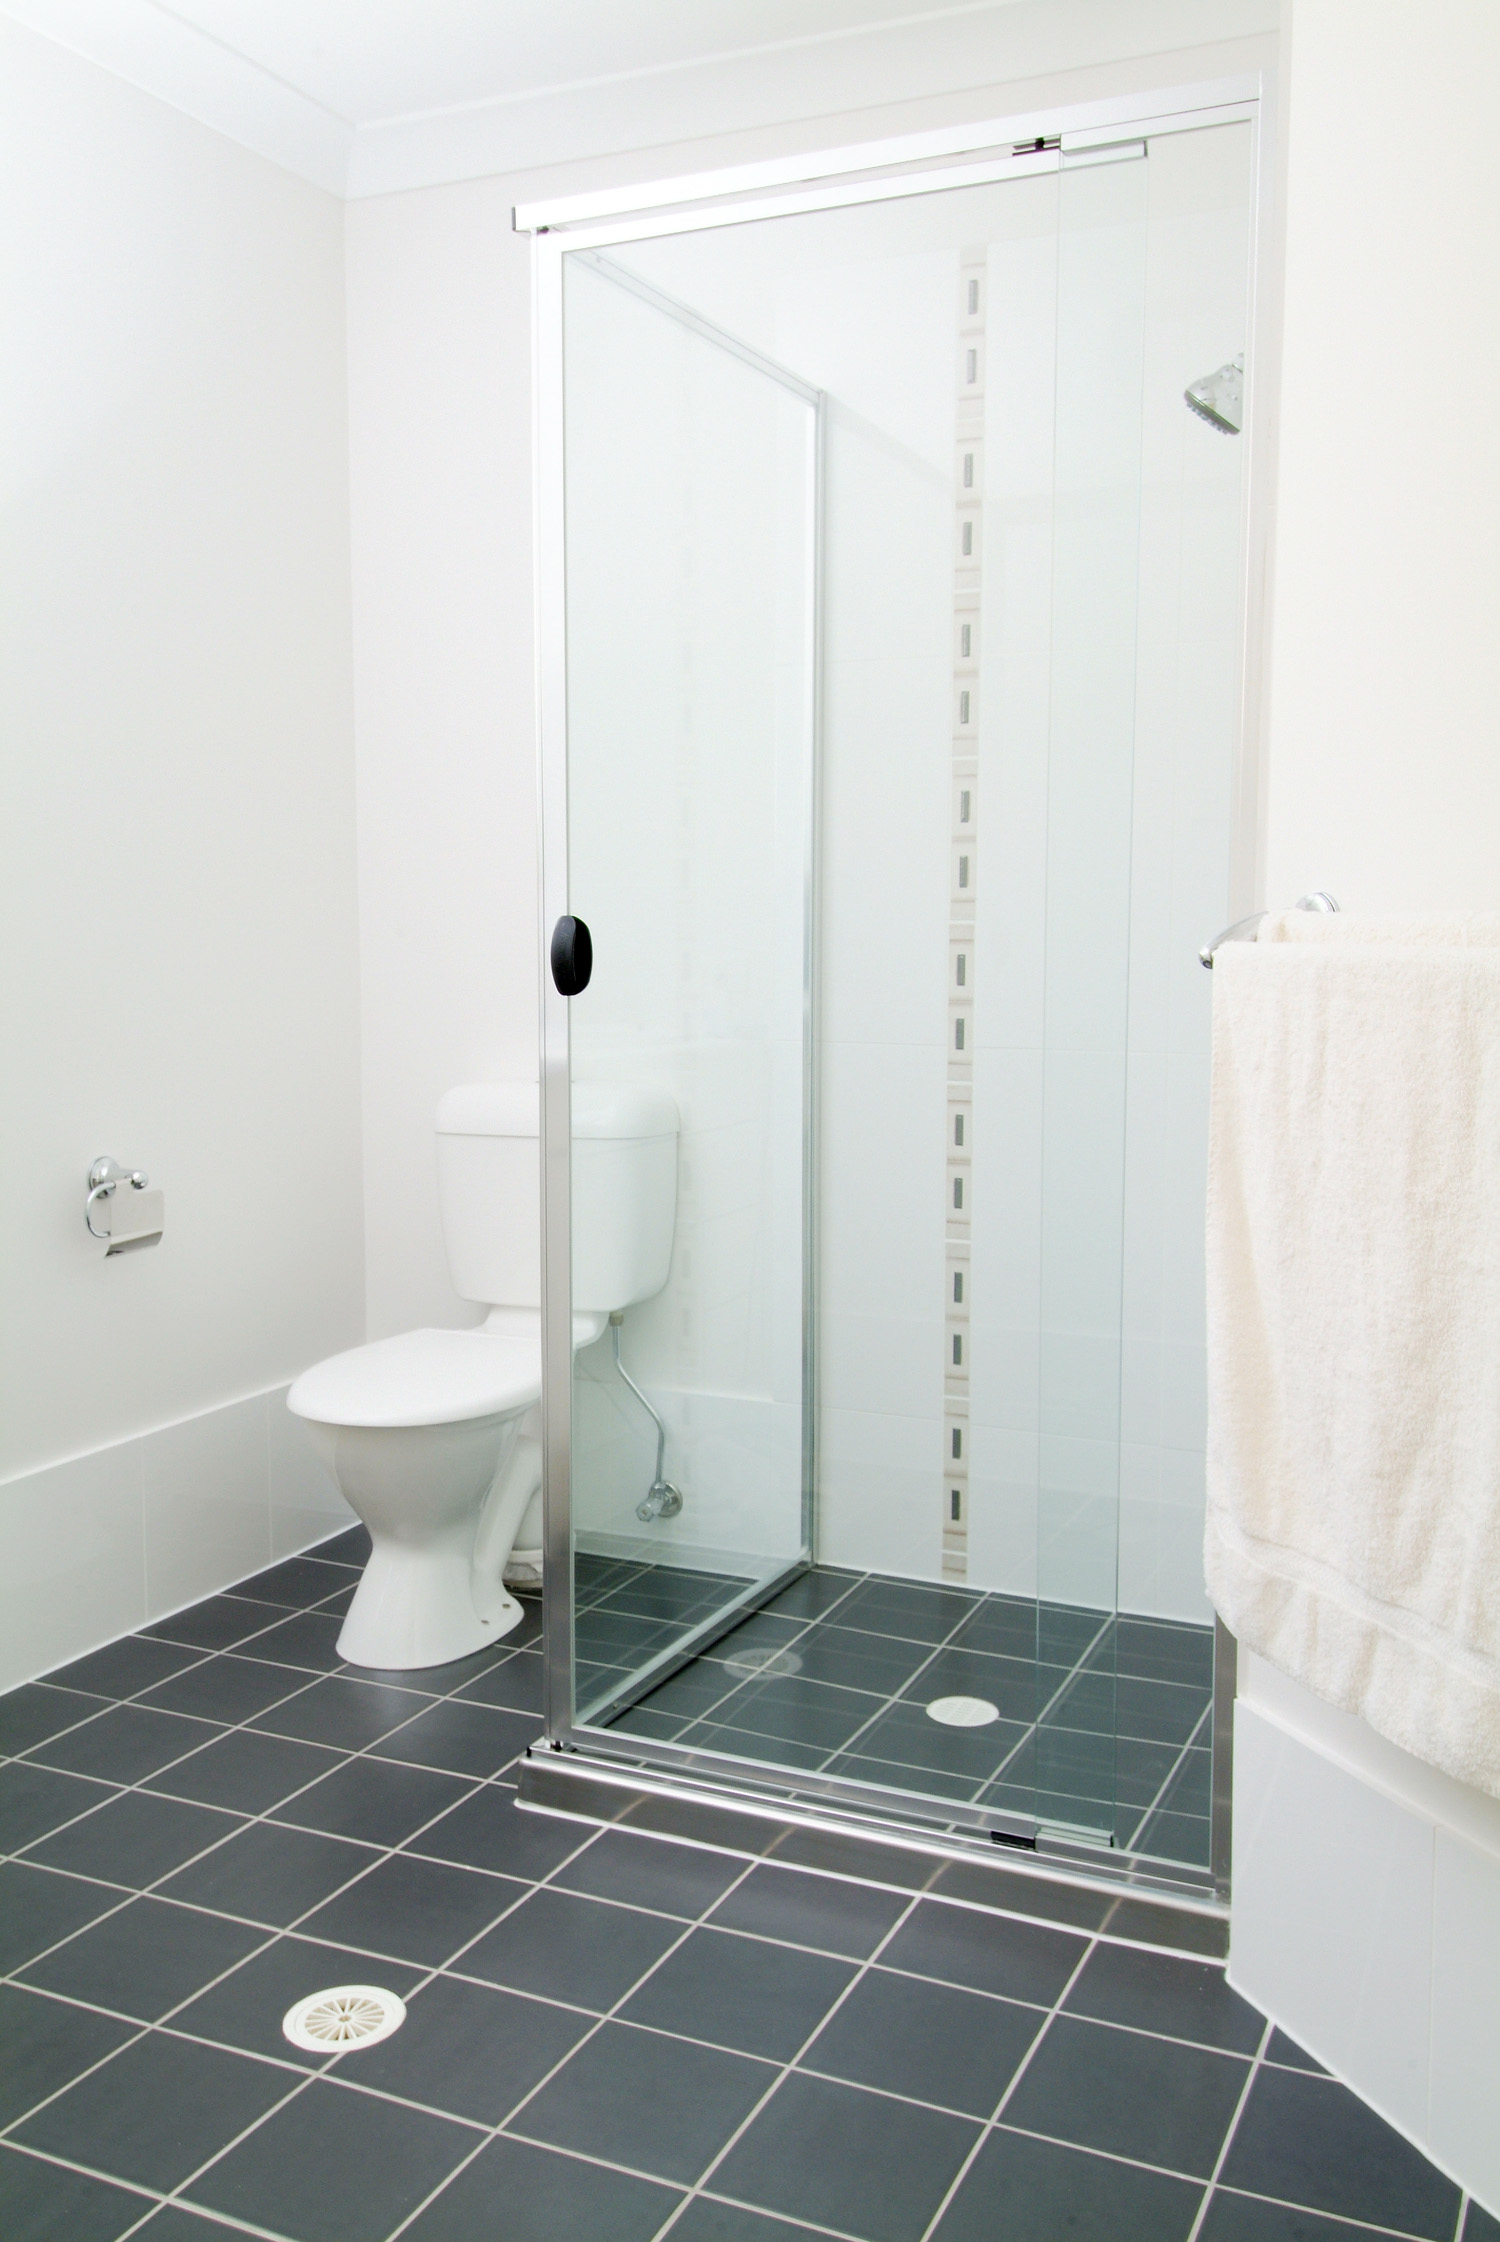 Simplifying Shower Construction Technical Information